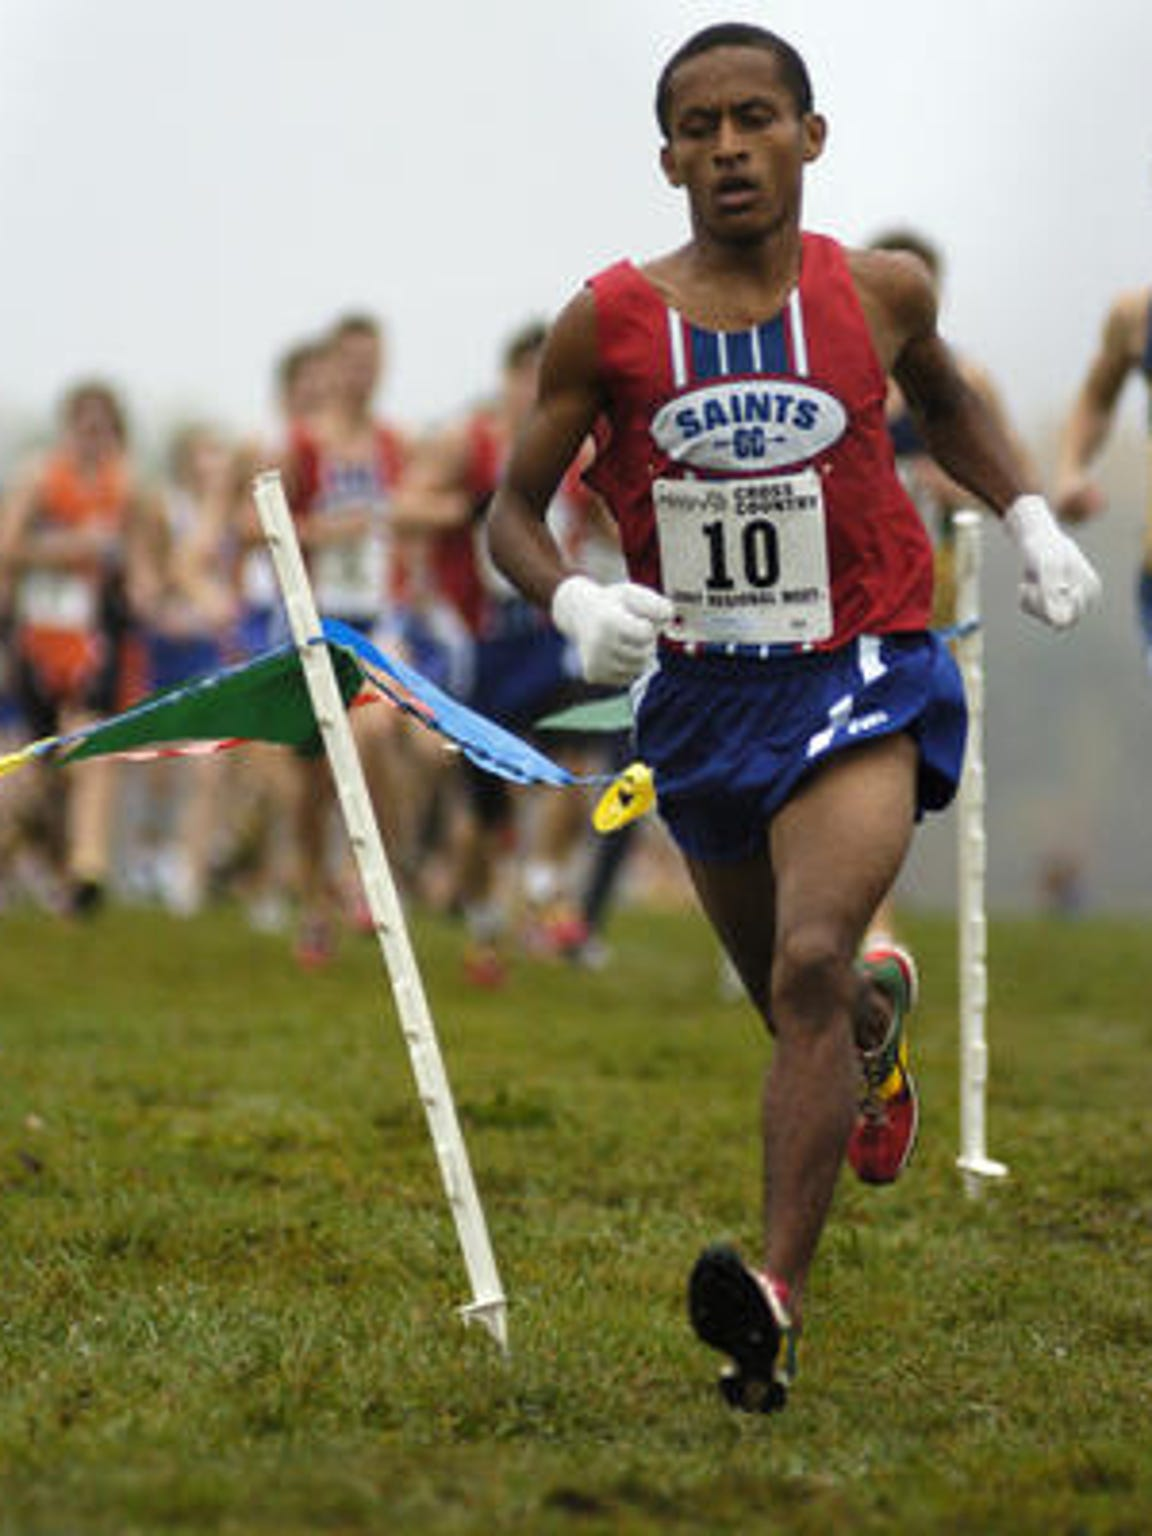 St. Clair High School graduate Addis Habtewold during a meet in 2007.